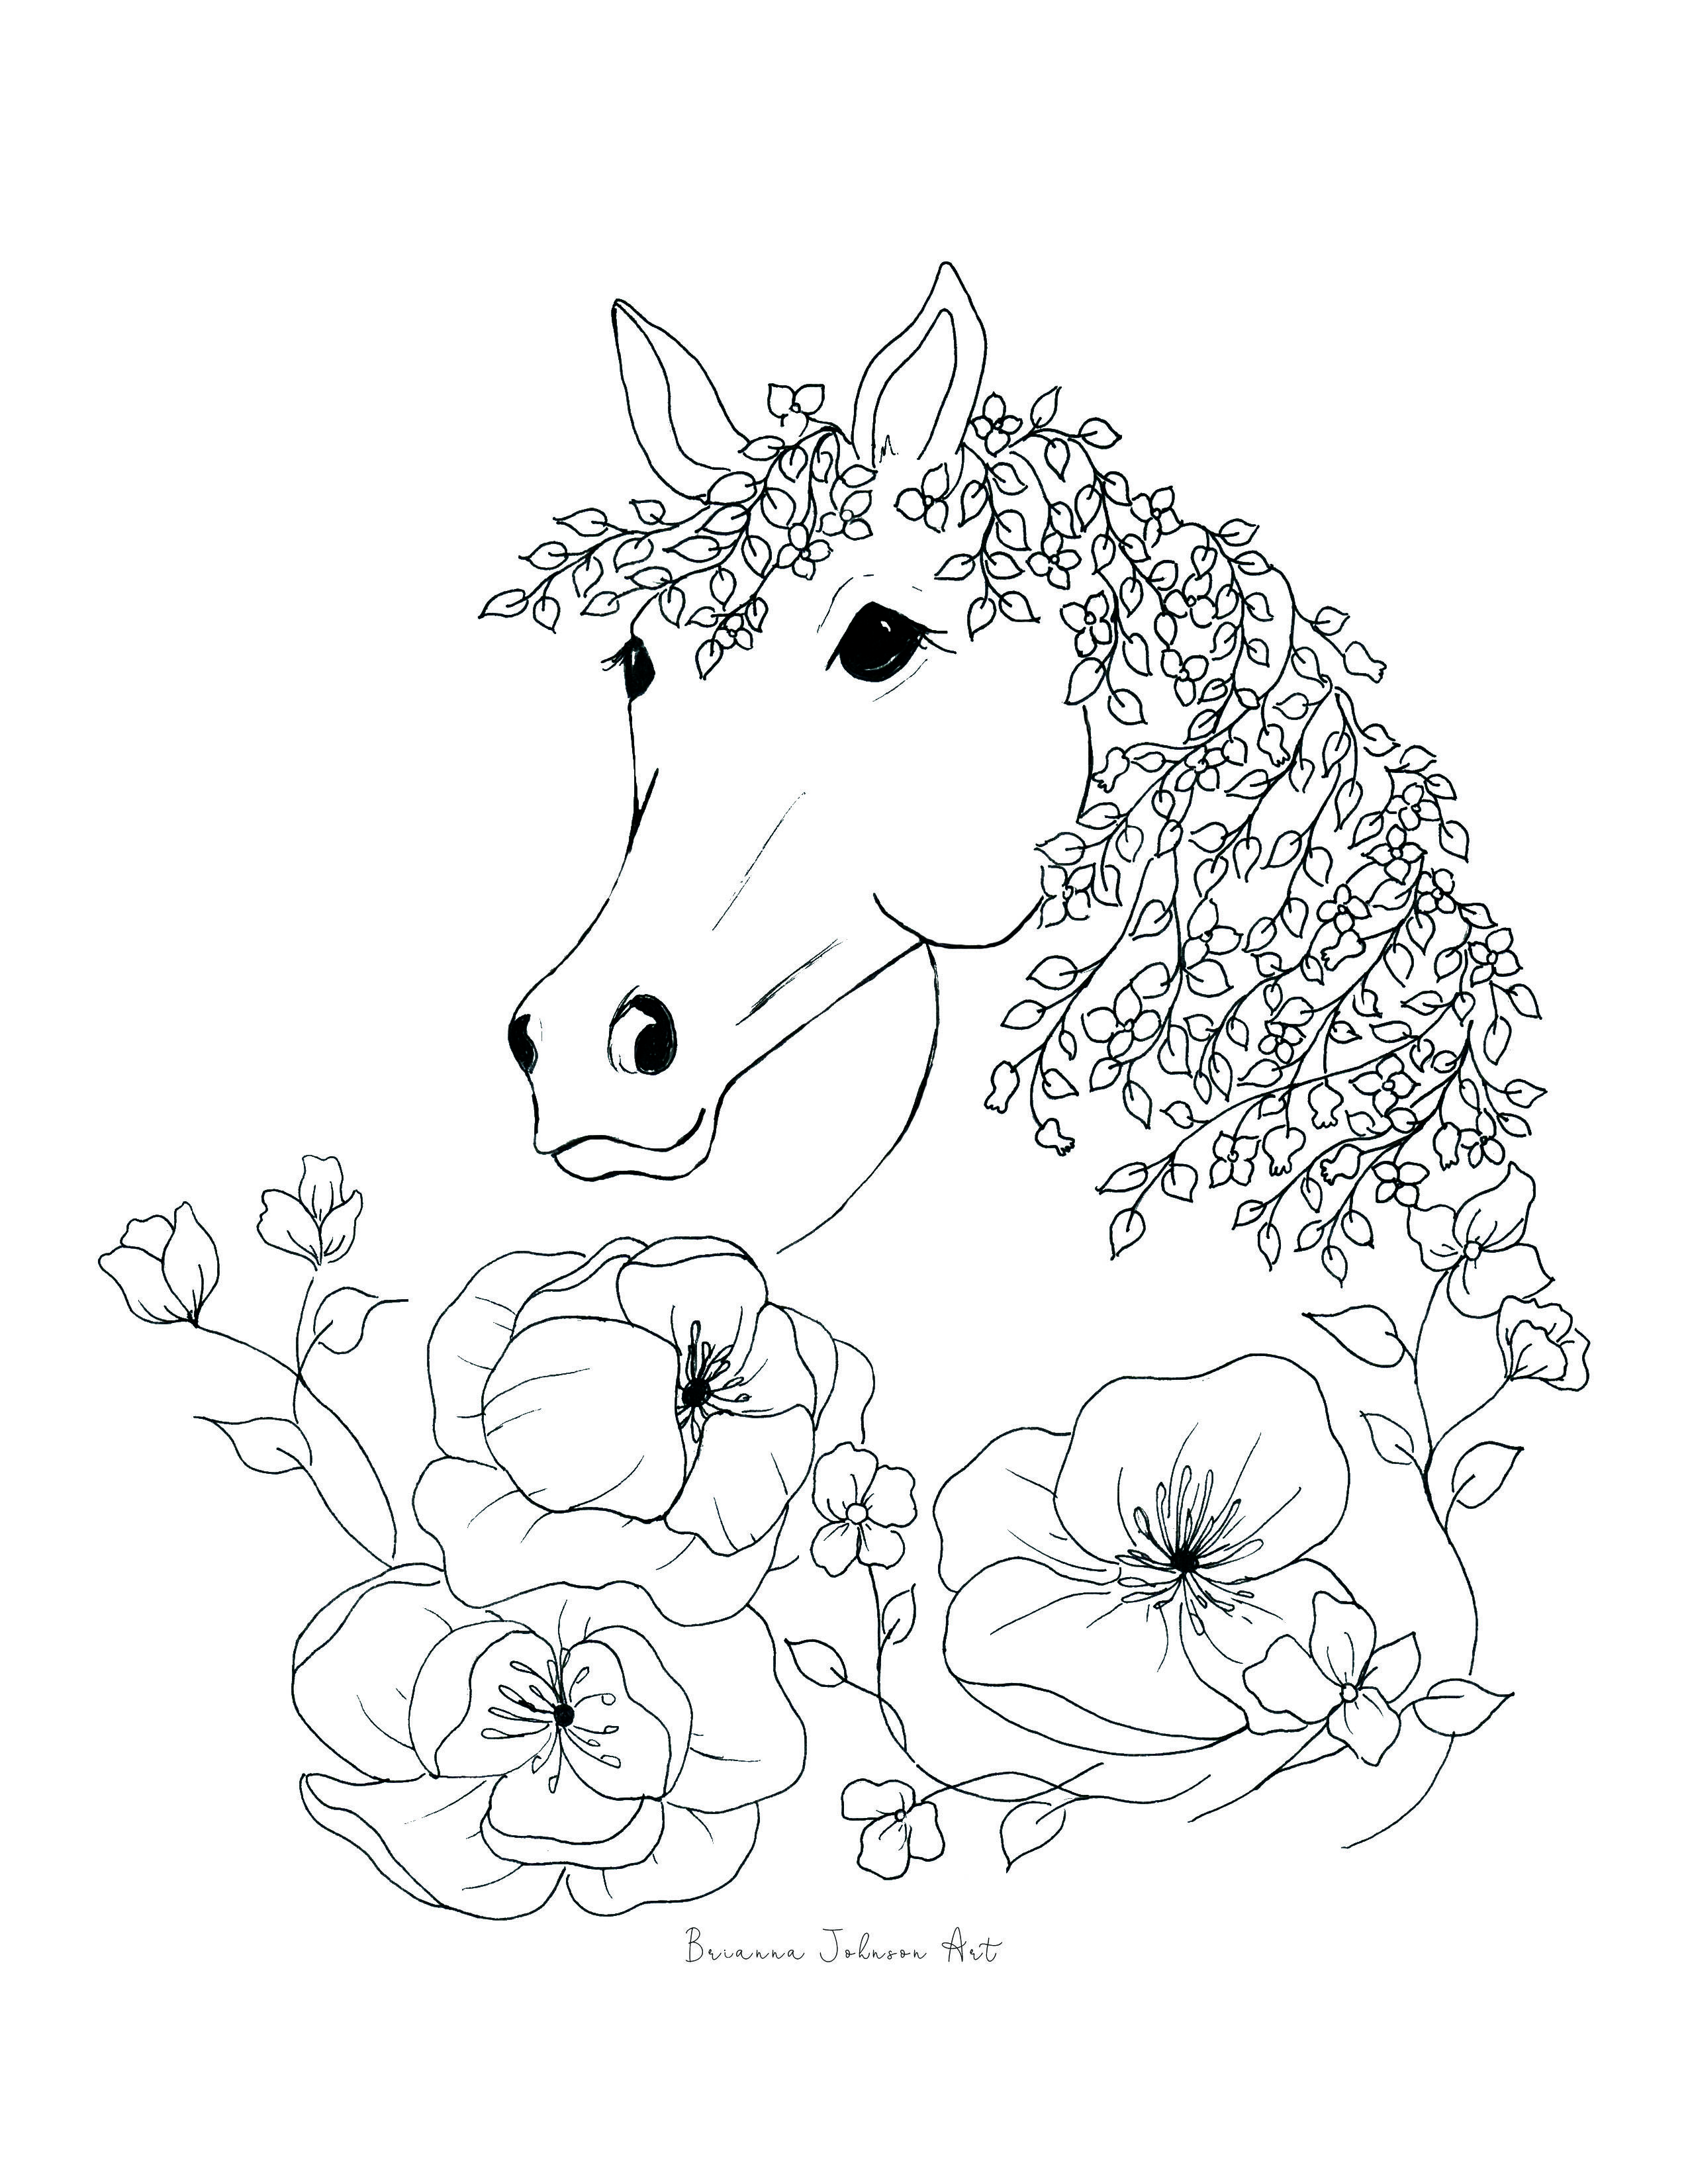 Printable Horse Coloring Book Page For Kids And Adults Horse Coloring Pages Horse Coloring Books Coloring Pages [ 3300 x 2550 Pixel ]